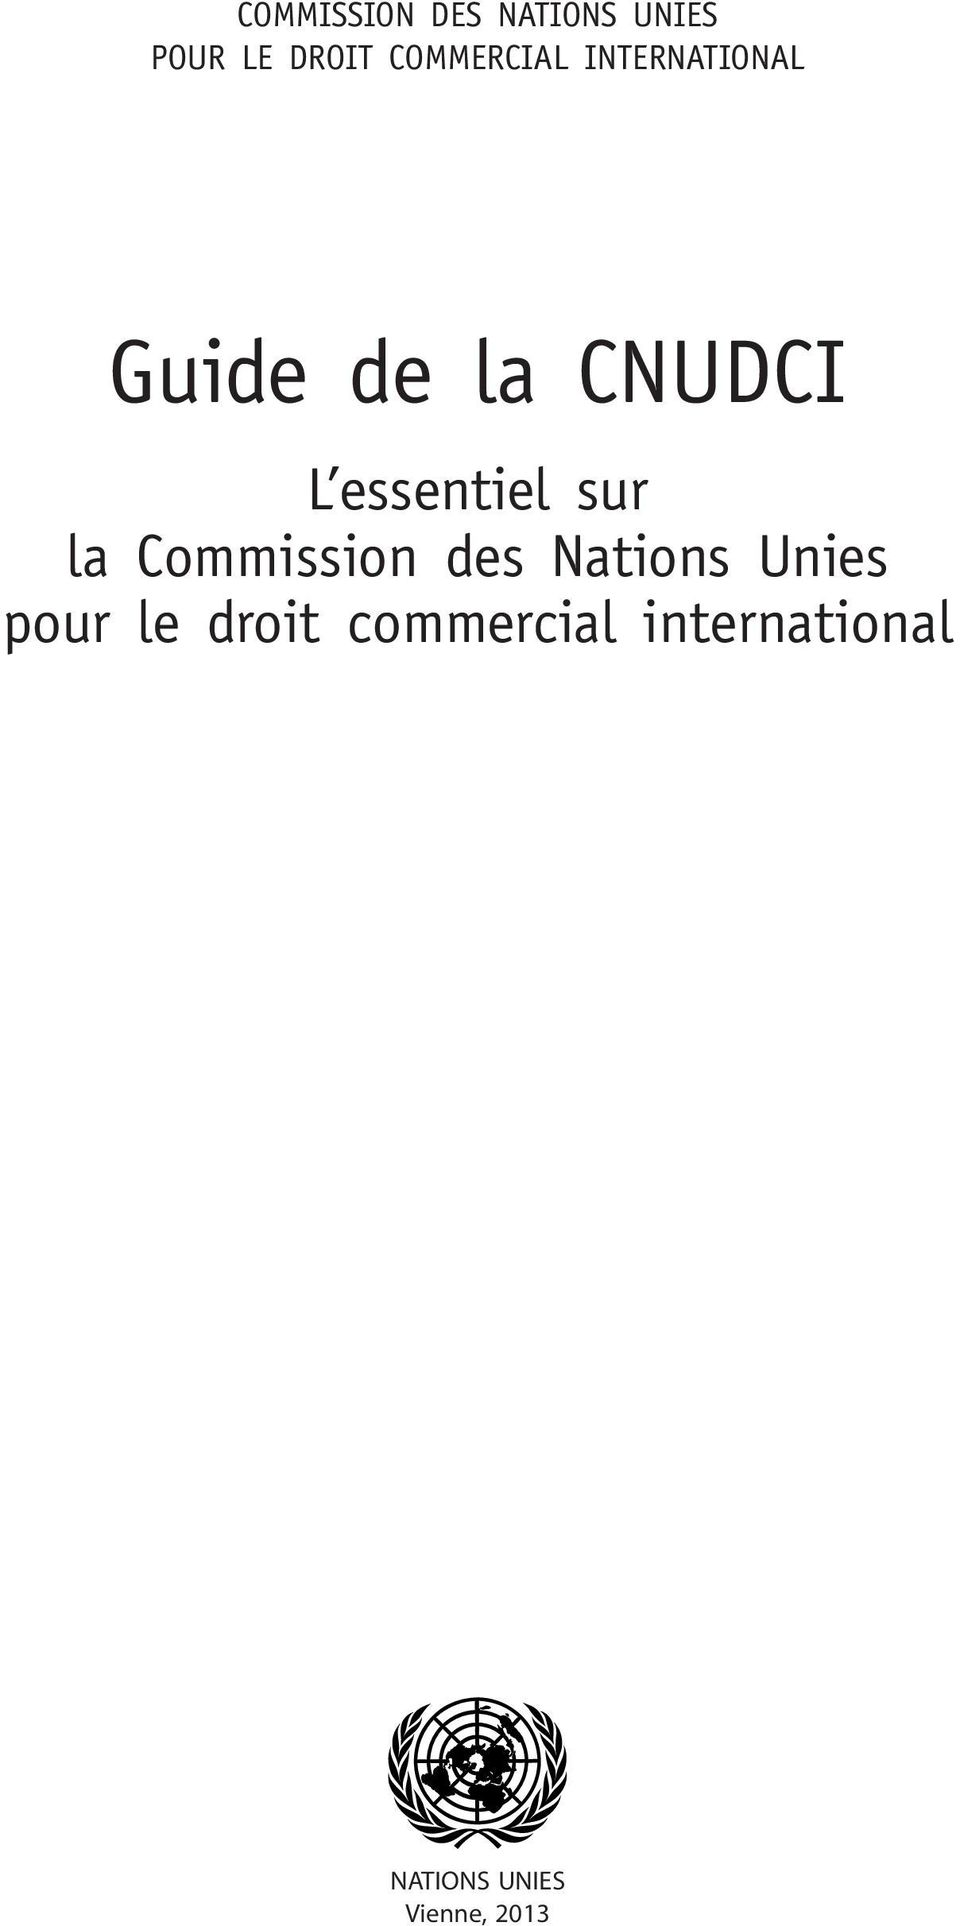 essentiel sur la Commission des Nations Unies